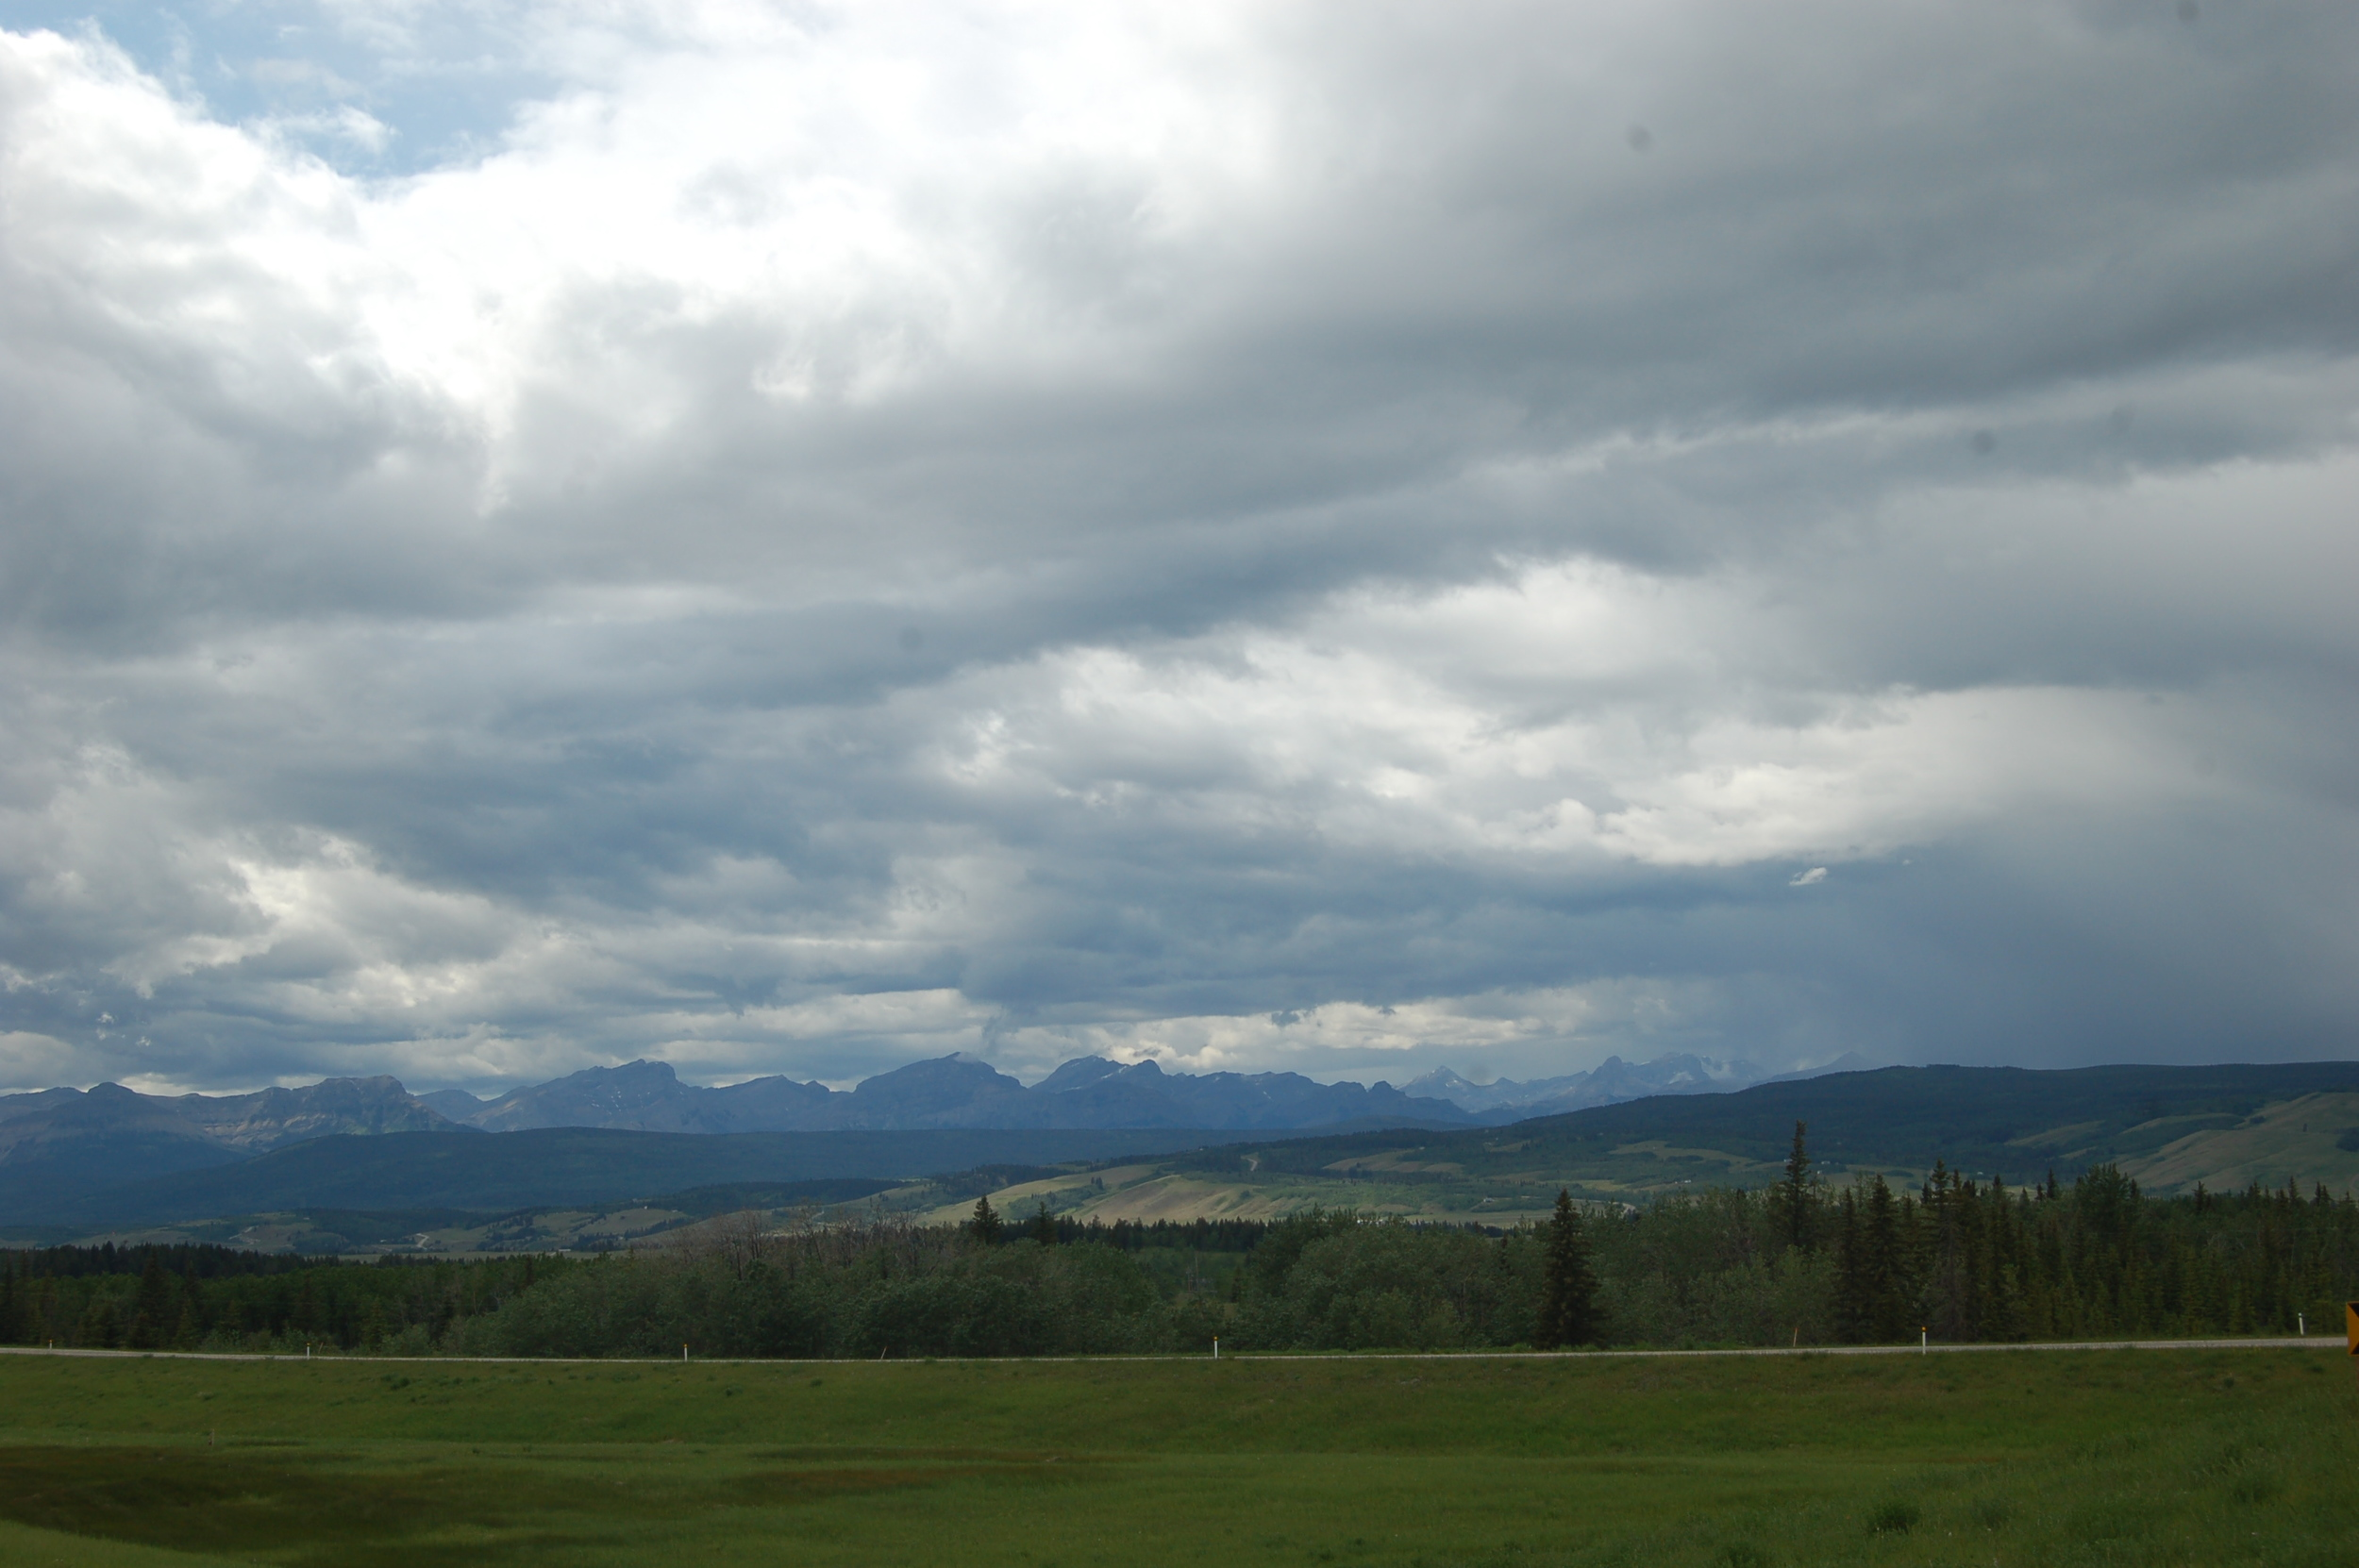 Views of the mountains from just west of Calgary.